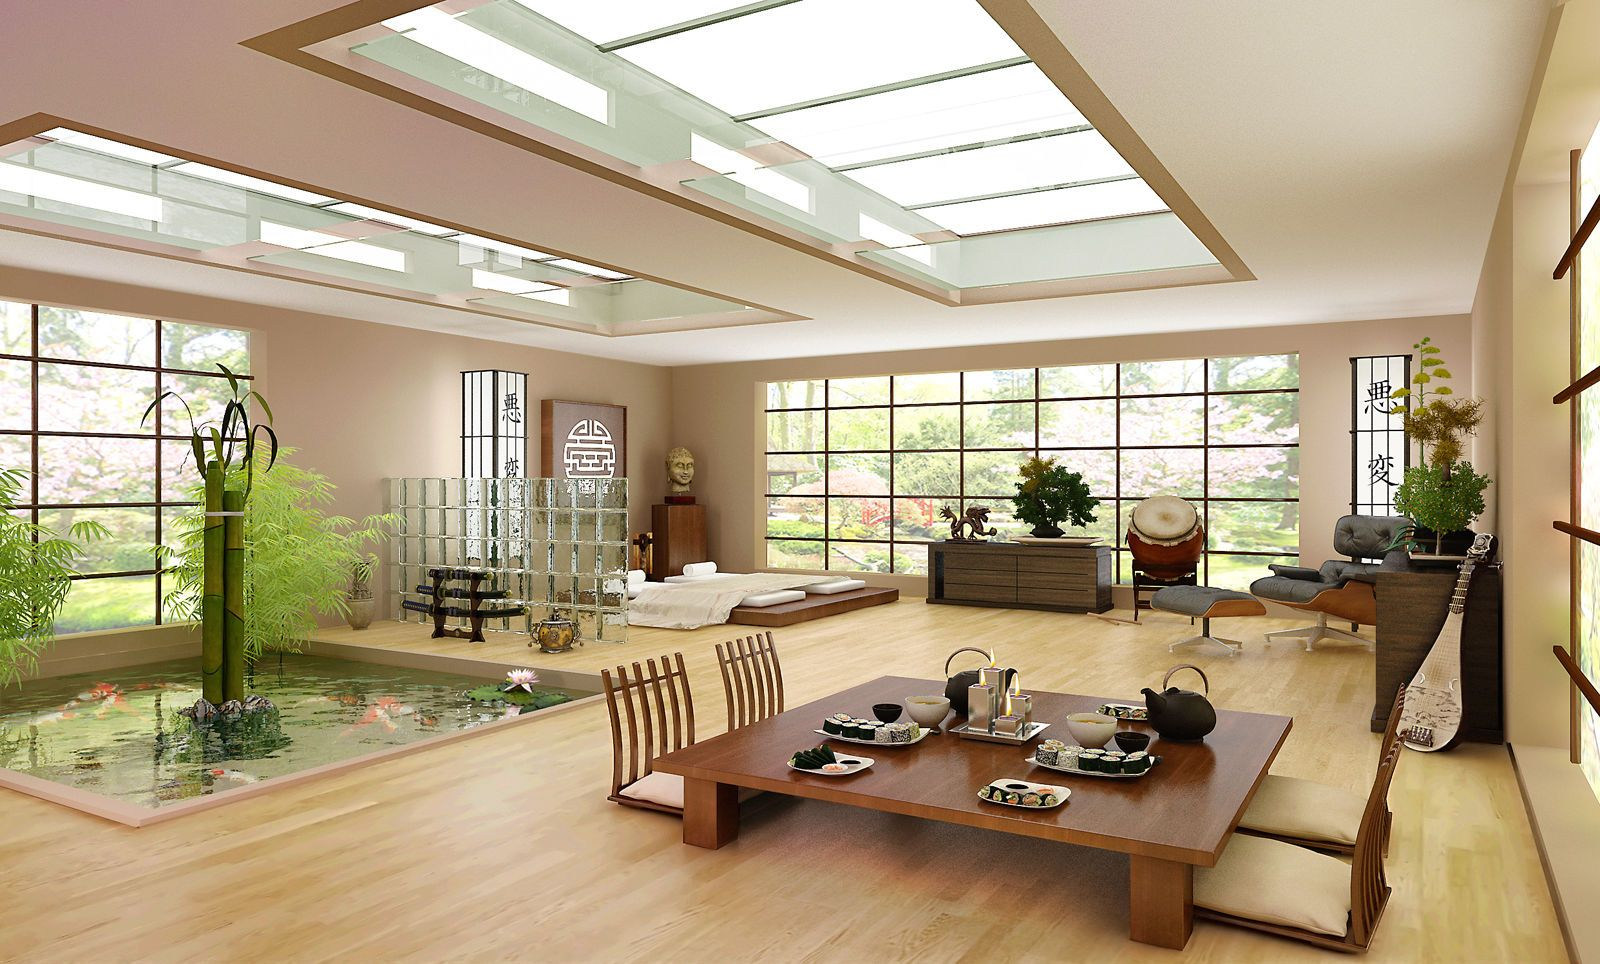 Japanese house interior by Binoy11 Villages Pictures